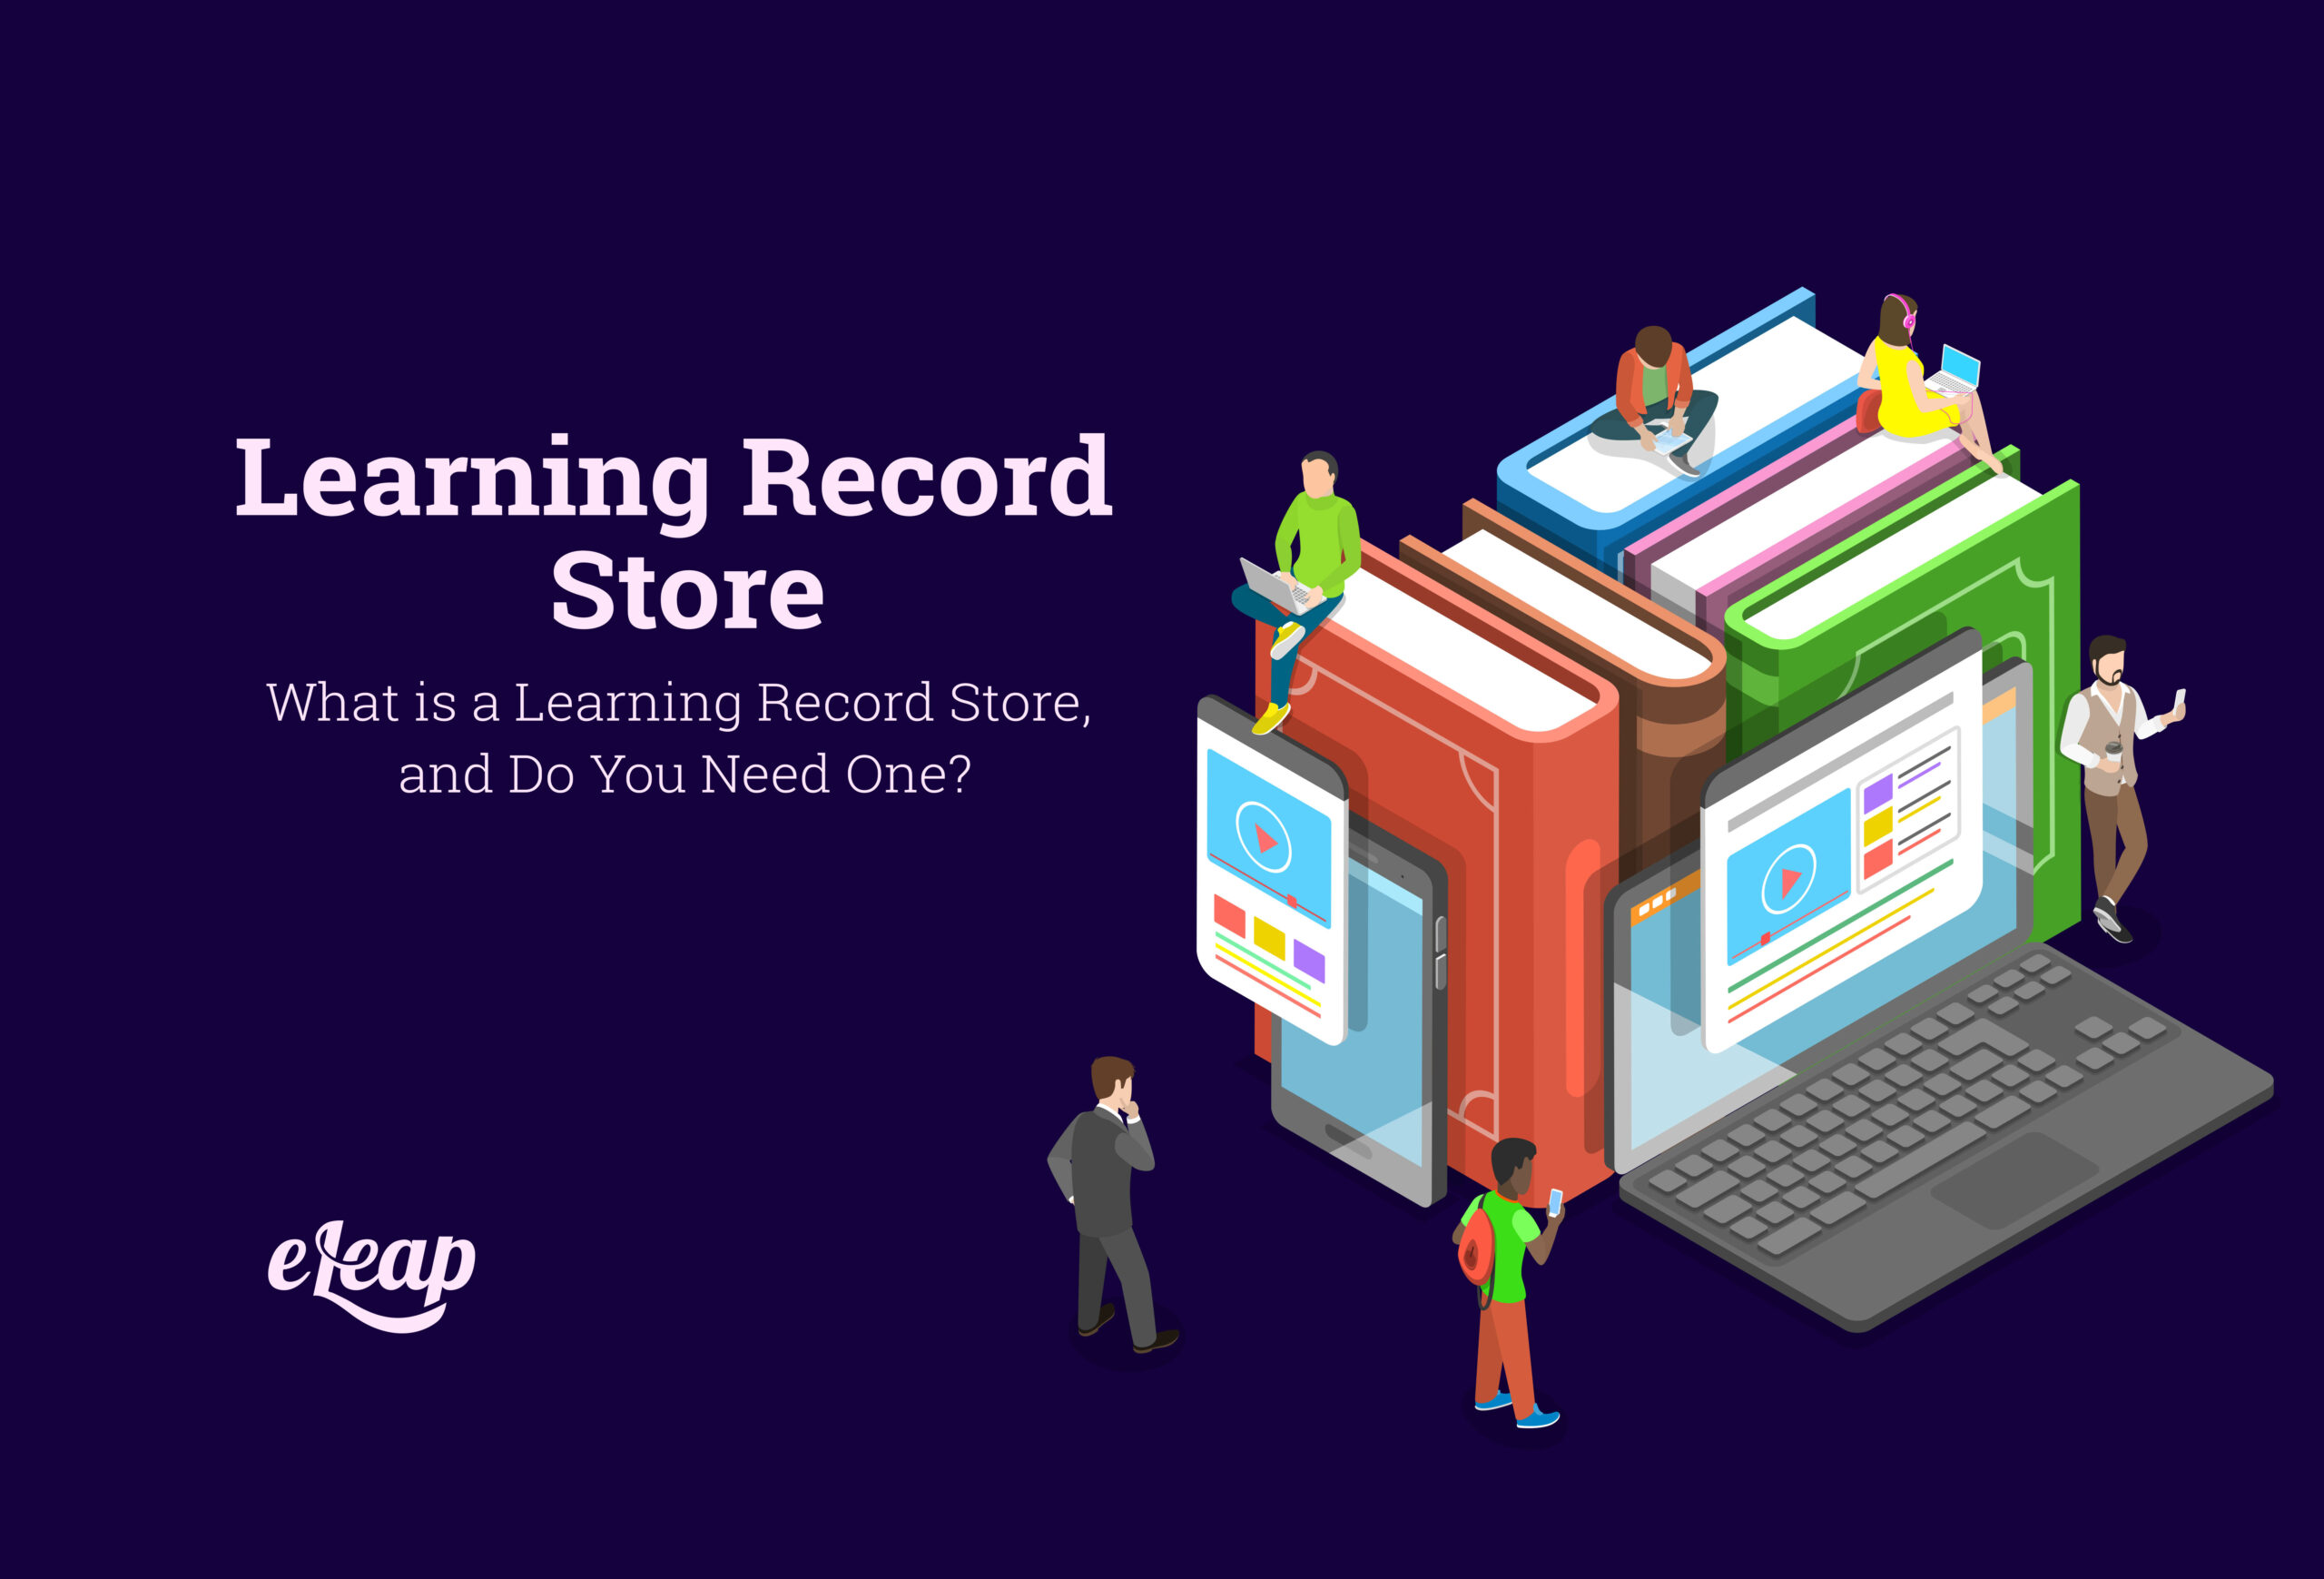 What is a Learning Record Store, and Do You Need One?